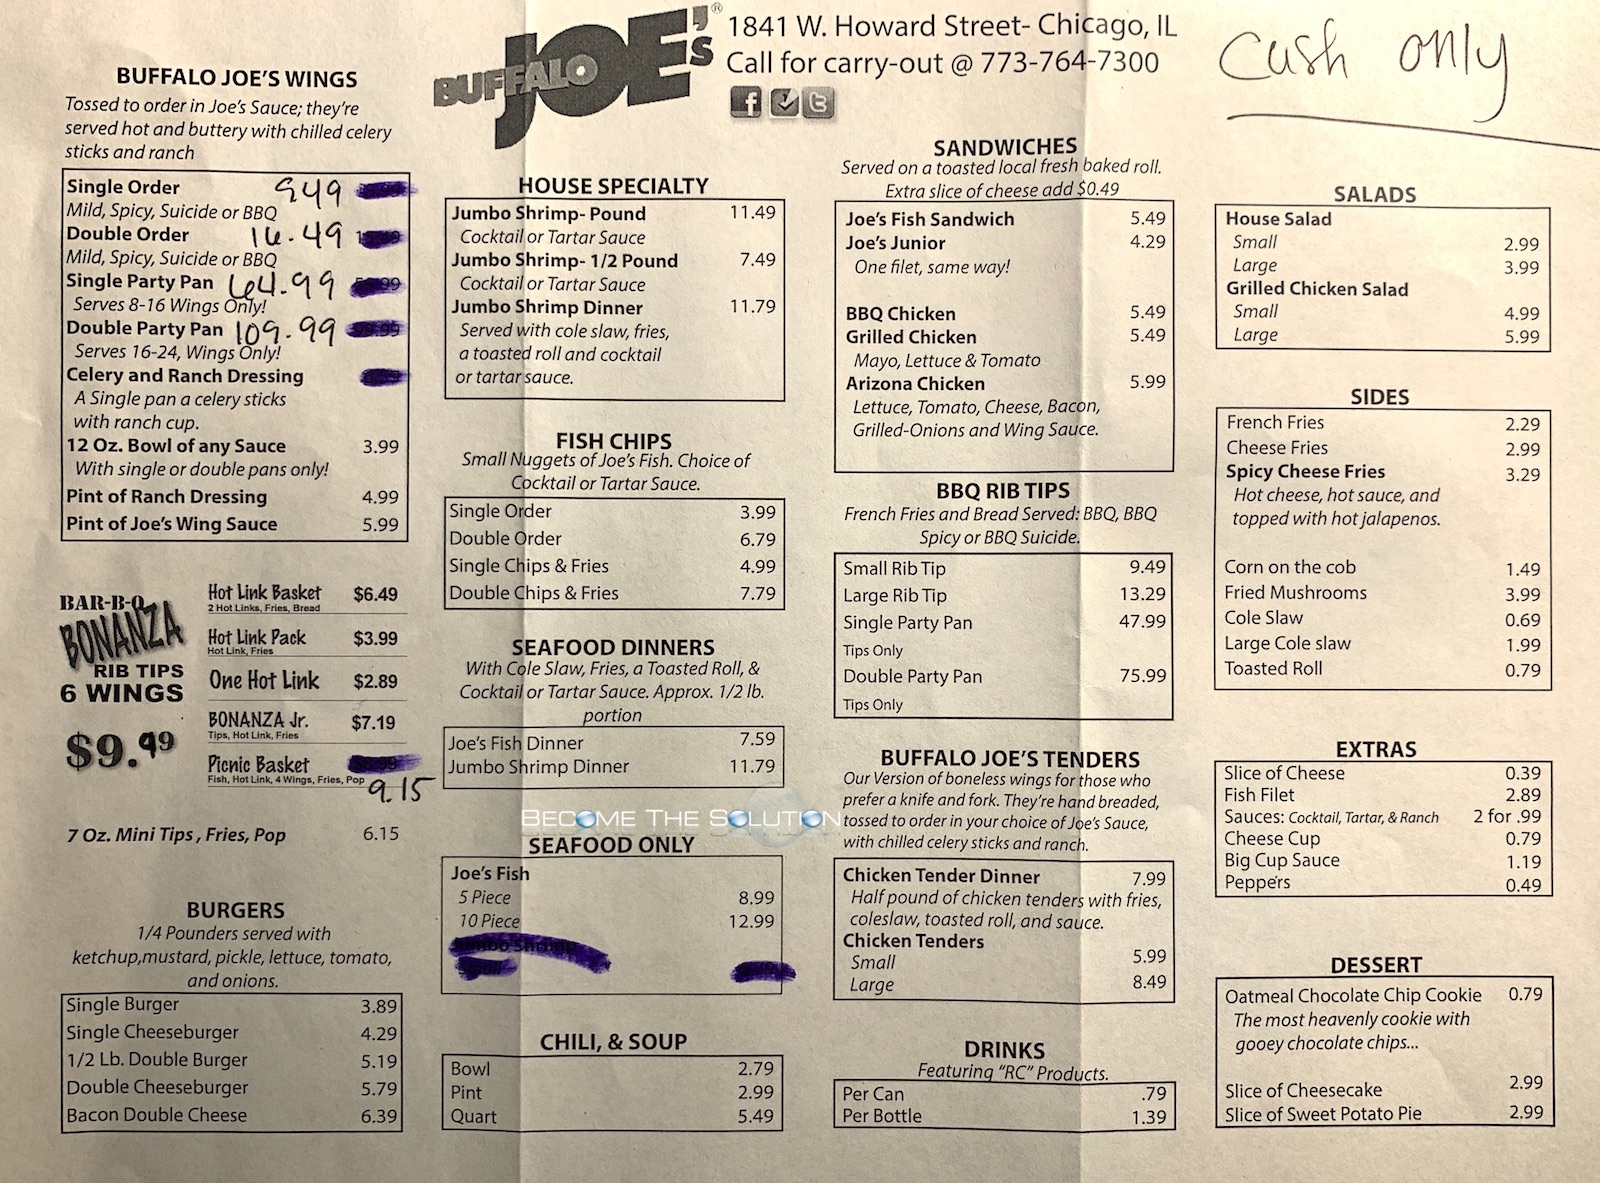 Buffalo joe's howard street chicago menu 1